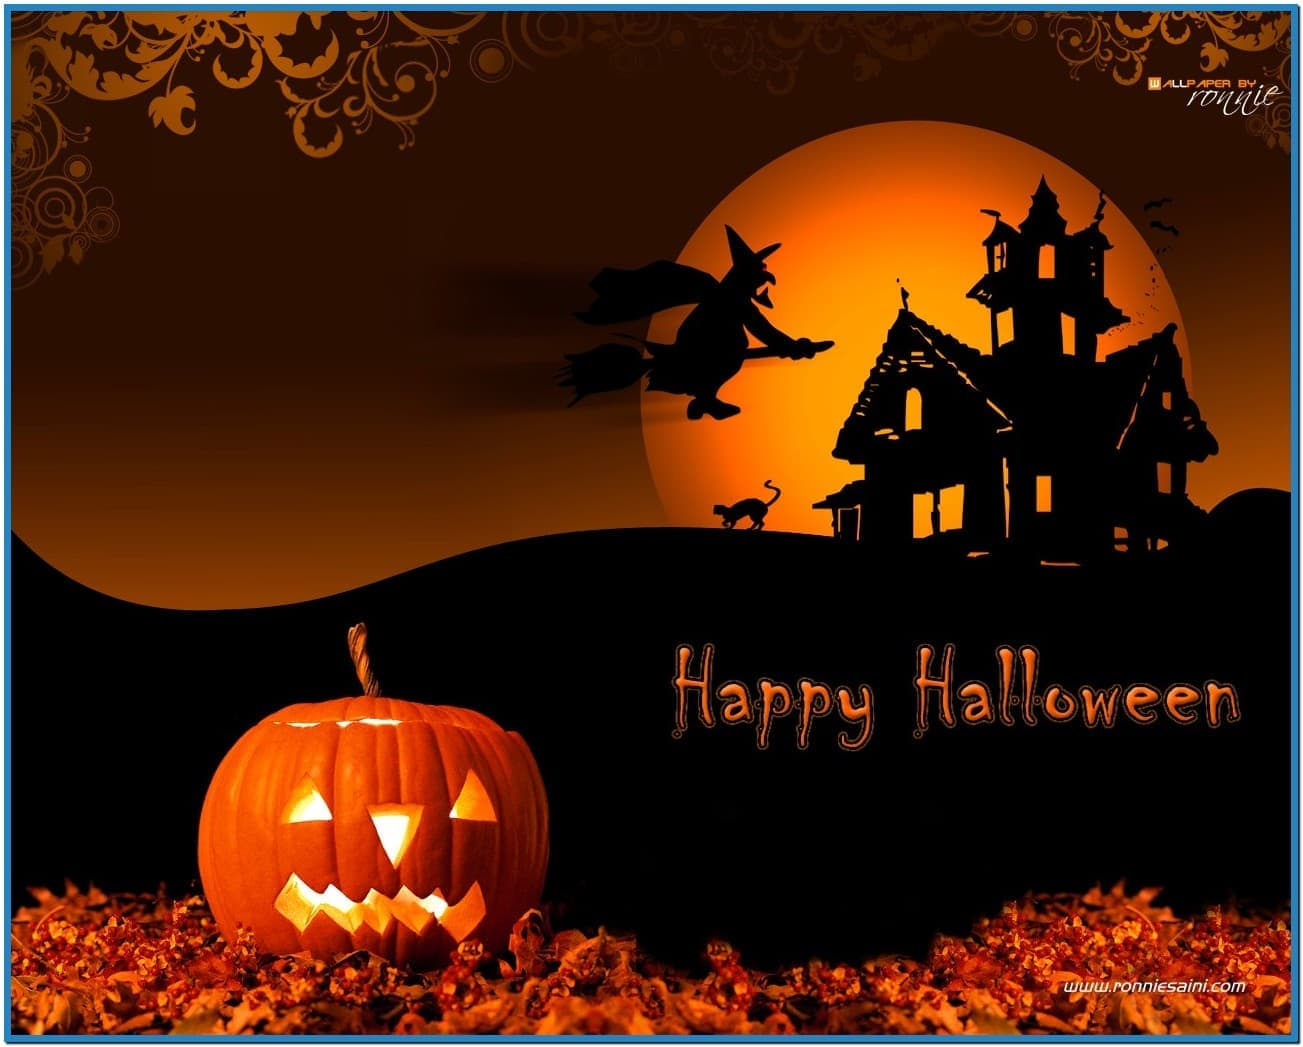 Halloween wallpaper screensavers   Download 1303x1047